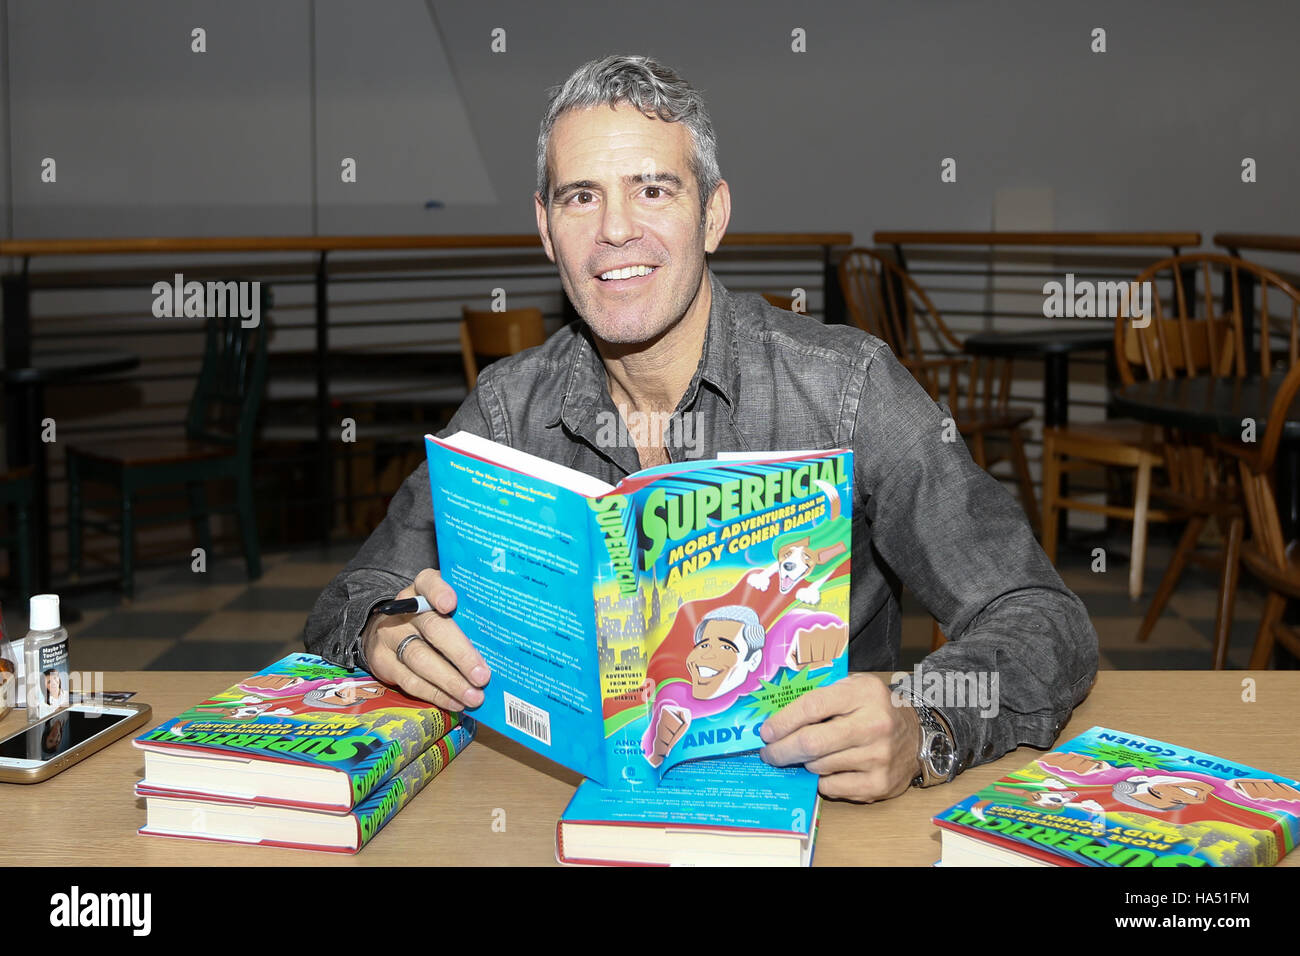 Andy Cohen signs copies of 'Superficial: More Adventures from the Andy Cohen Diaries' at Book Revue on November - Stock Image